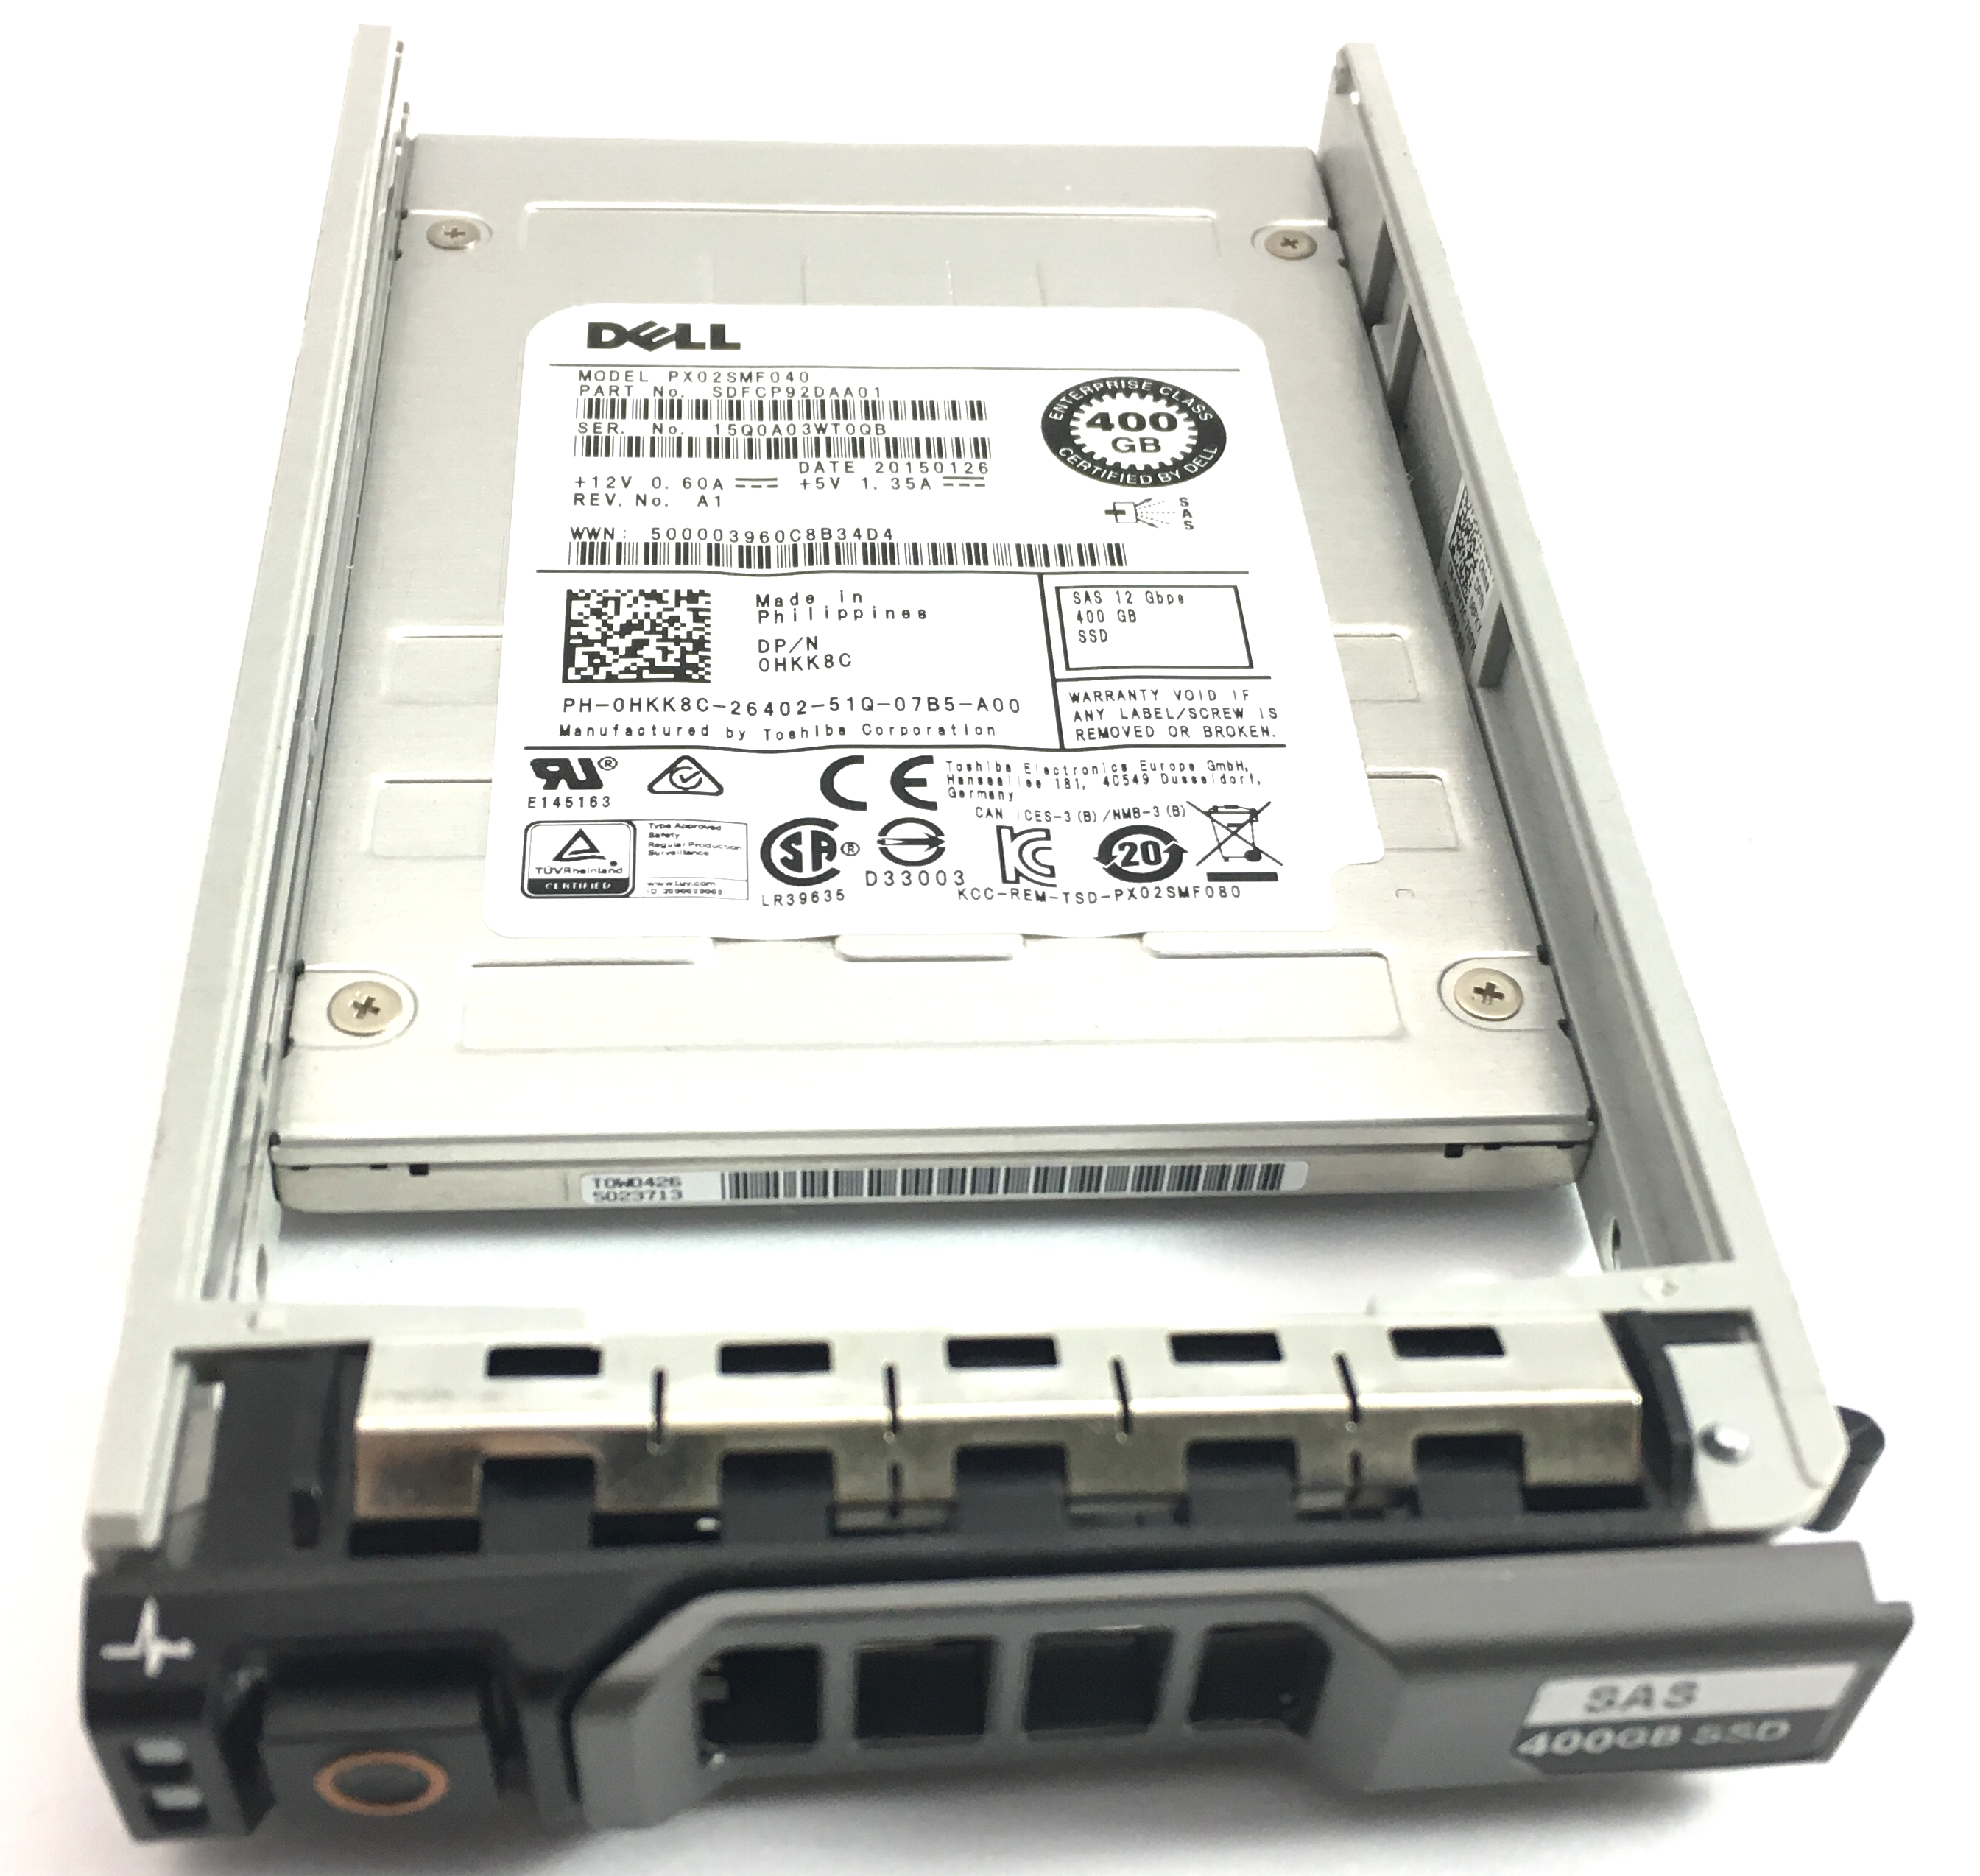 DELL 400GB 12GBPS SAS 2.5'' SOLID STATE DRIVE SSD (HKK8C)